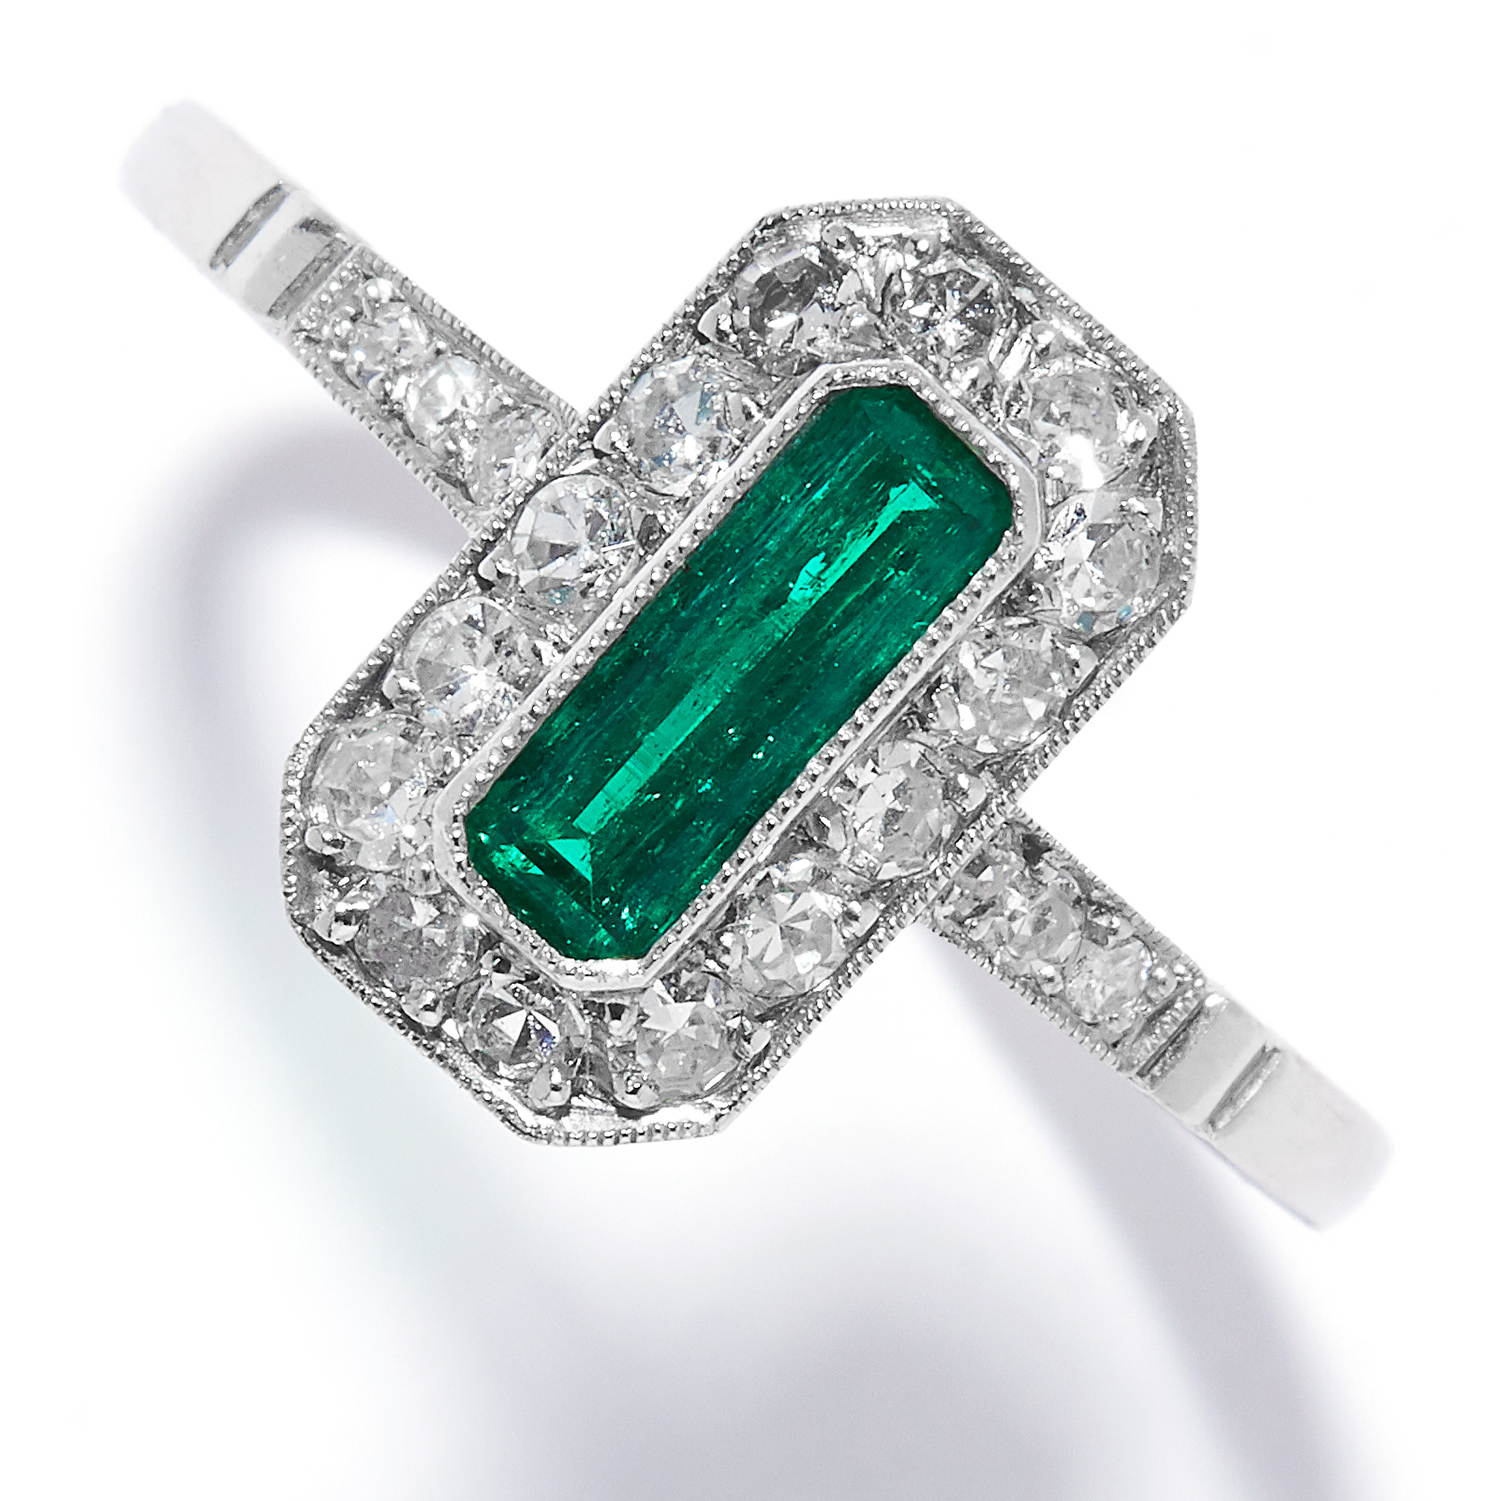 EMERALD AND DIAMOND DRESS RING in platinum, set with an emerald cut emerald in a cluster of old